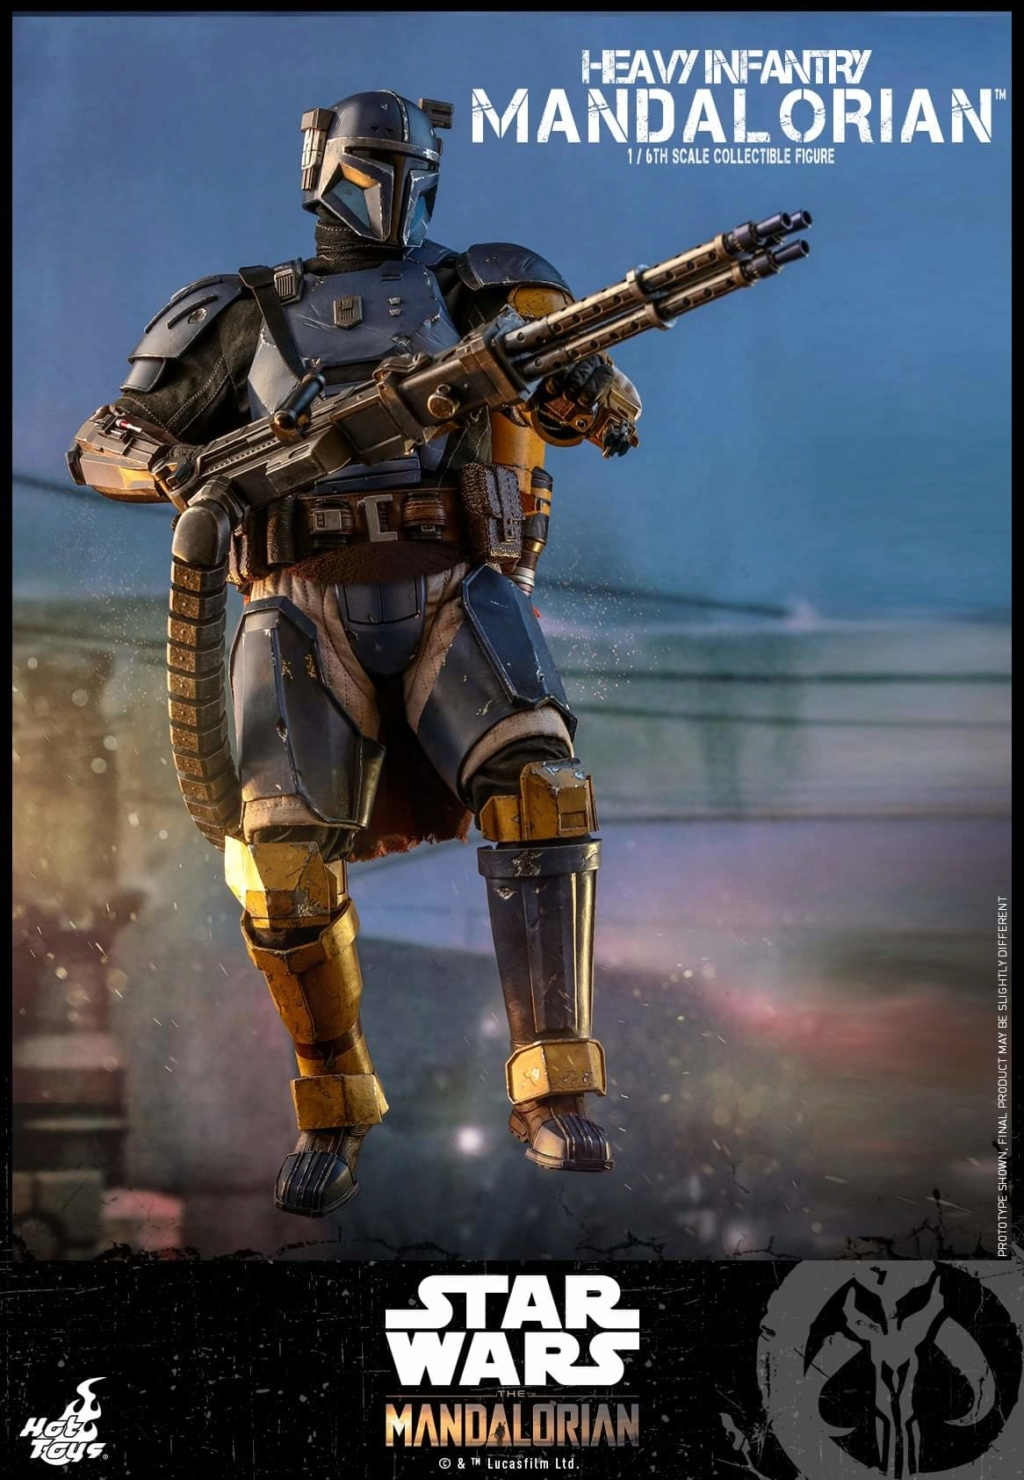 Heavy Infantry Mandalorian Collectible Figure 1/6th Hot Toy. Fb_img57